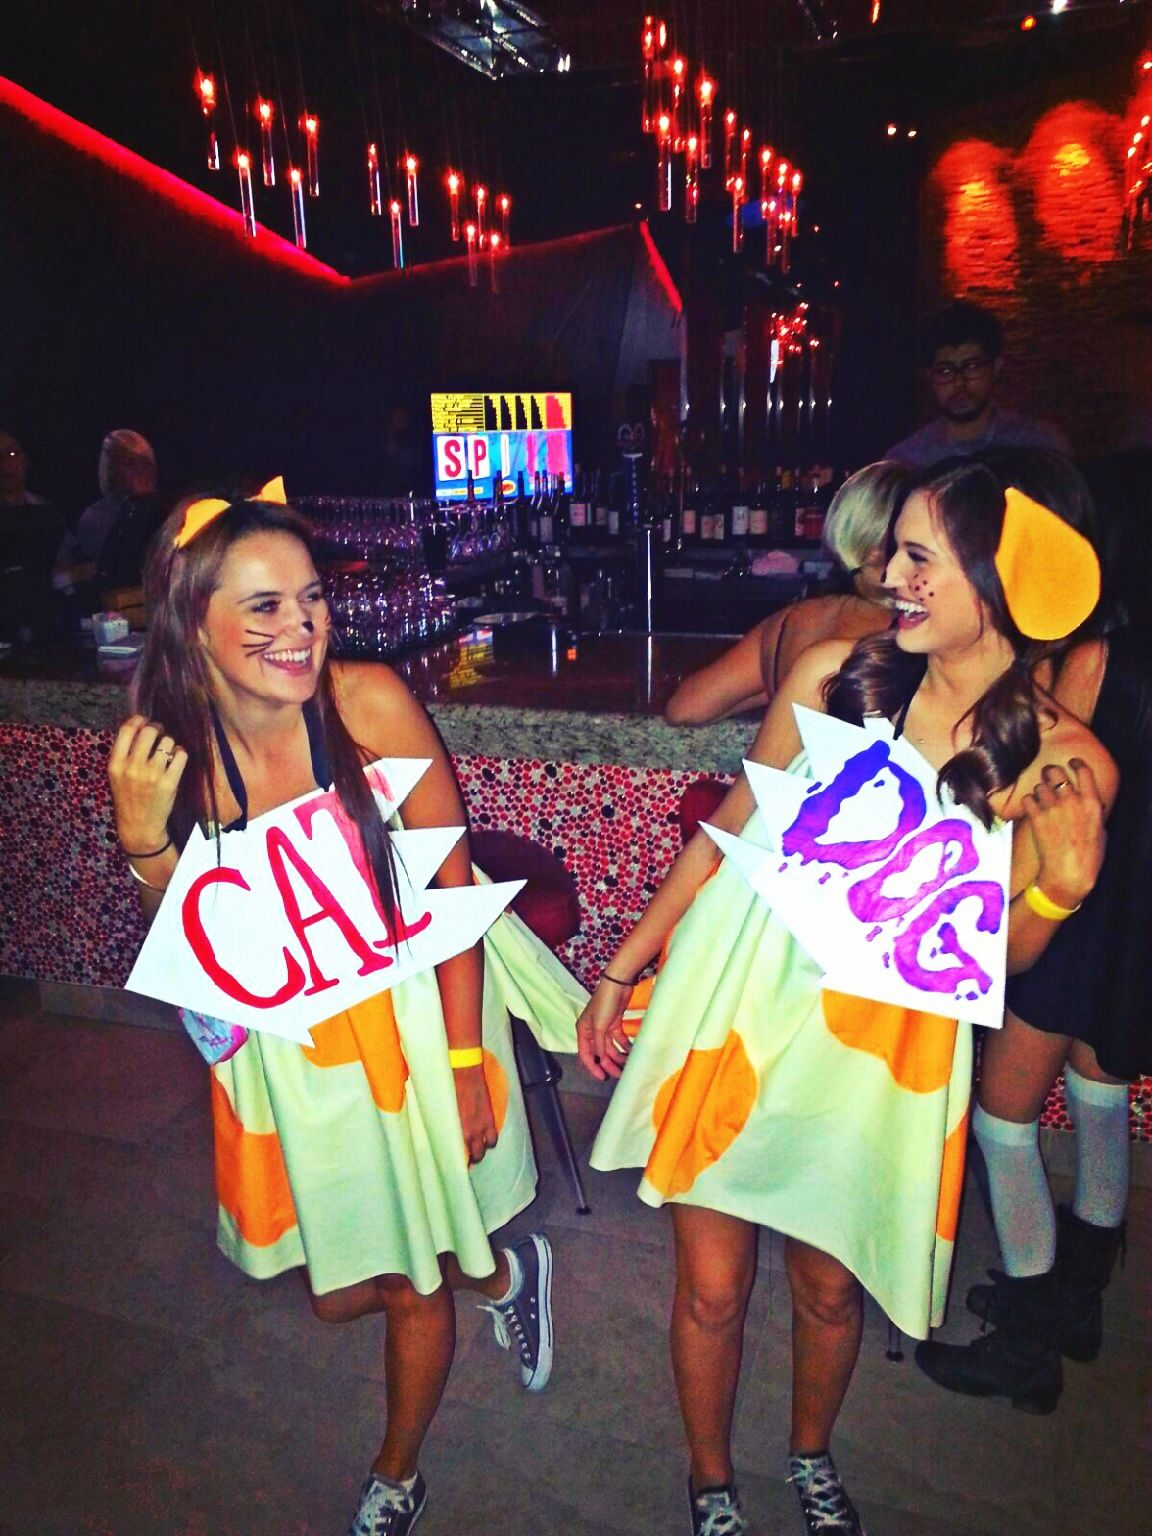 Halloween Costumes For Two Friends.Super Cute Idea For Two Best Friends Who Want To Be Comfy